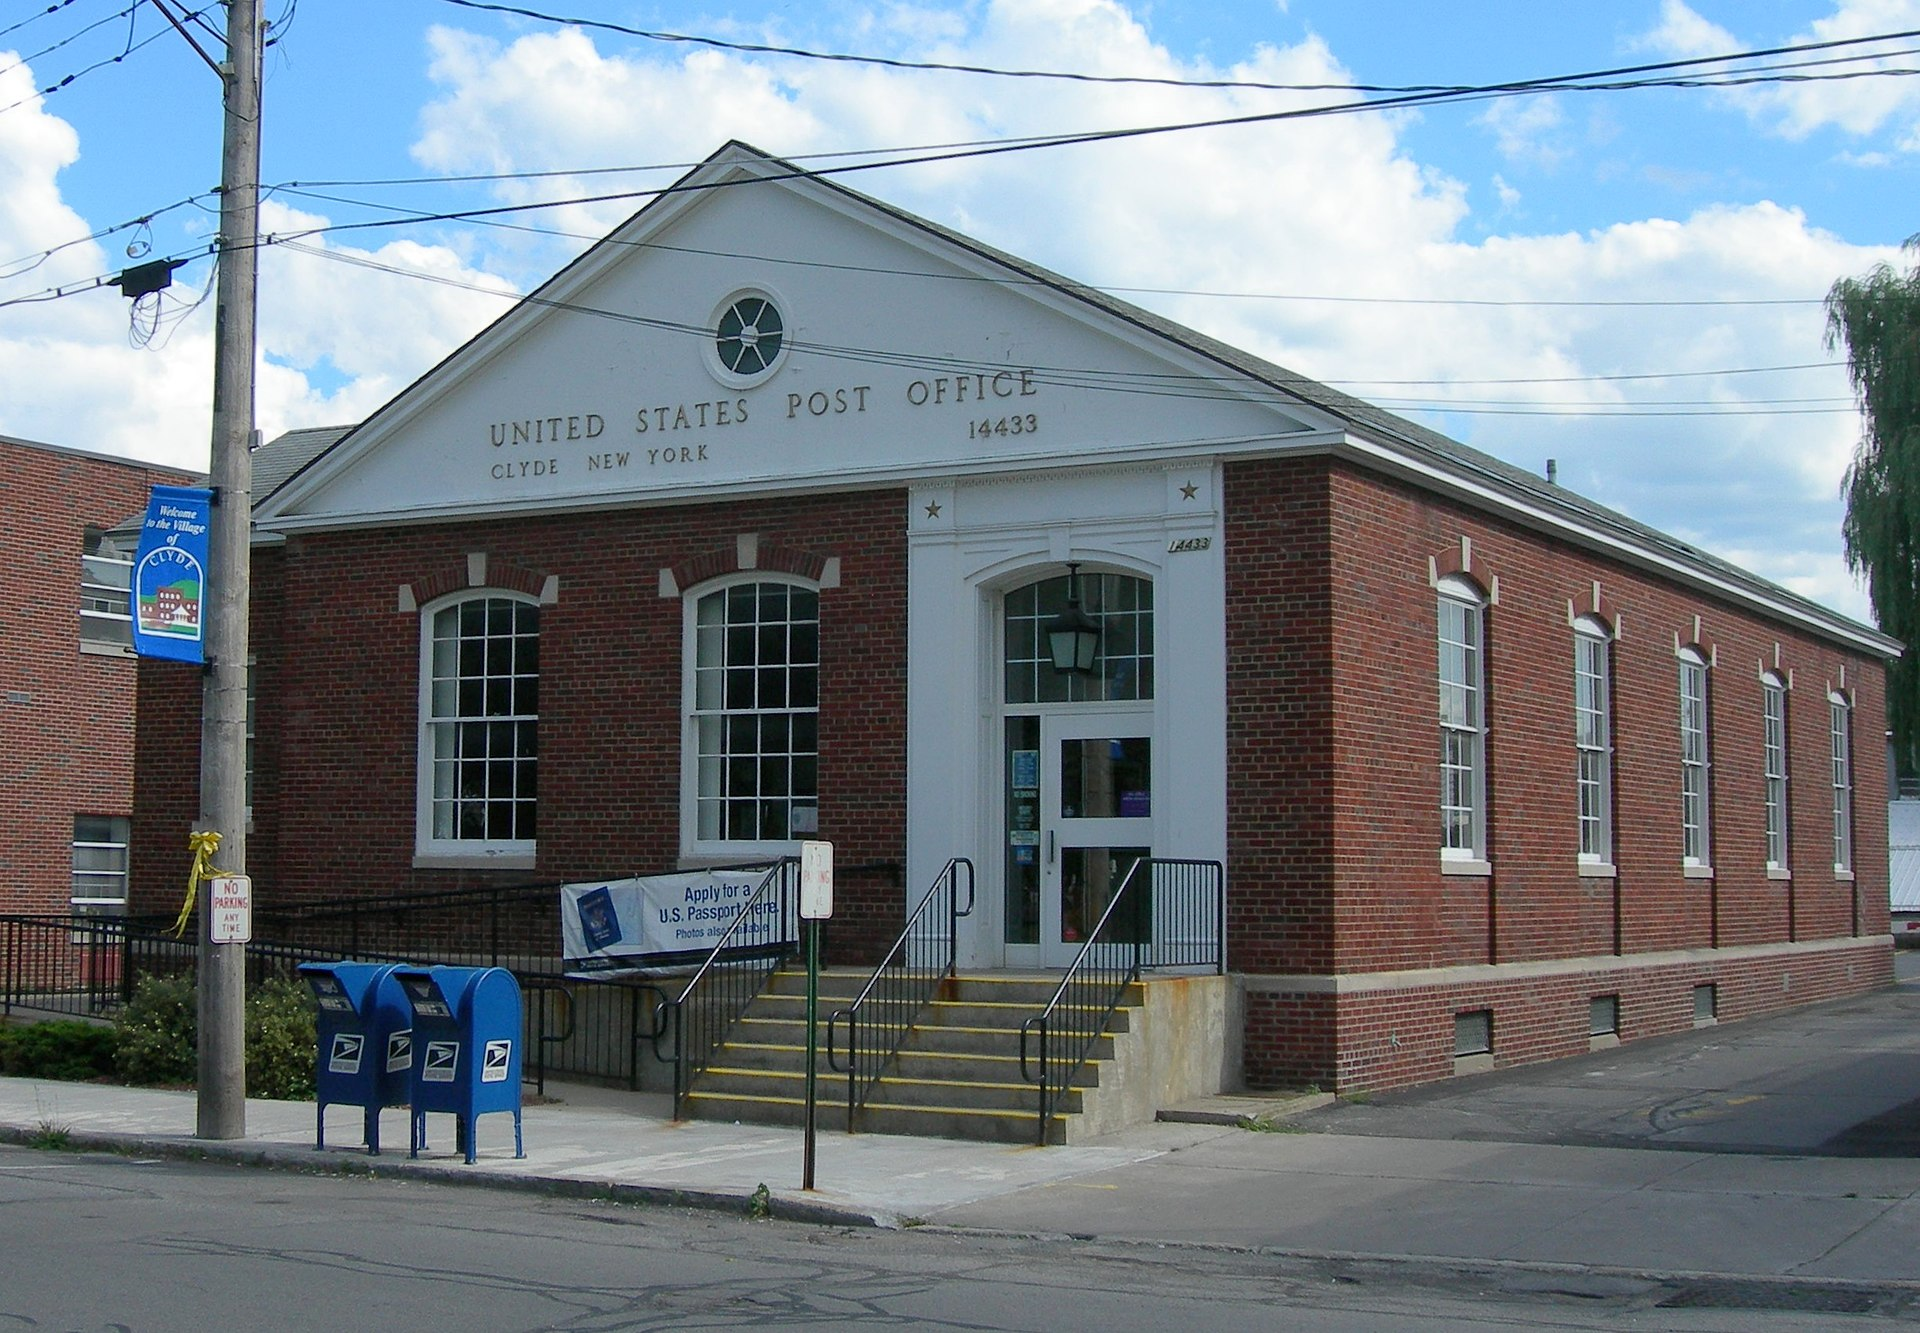 United states post office clyde new york wikipedia - United states post office ...